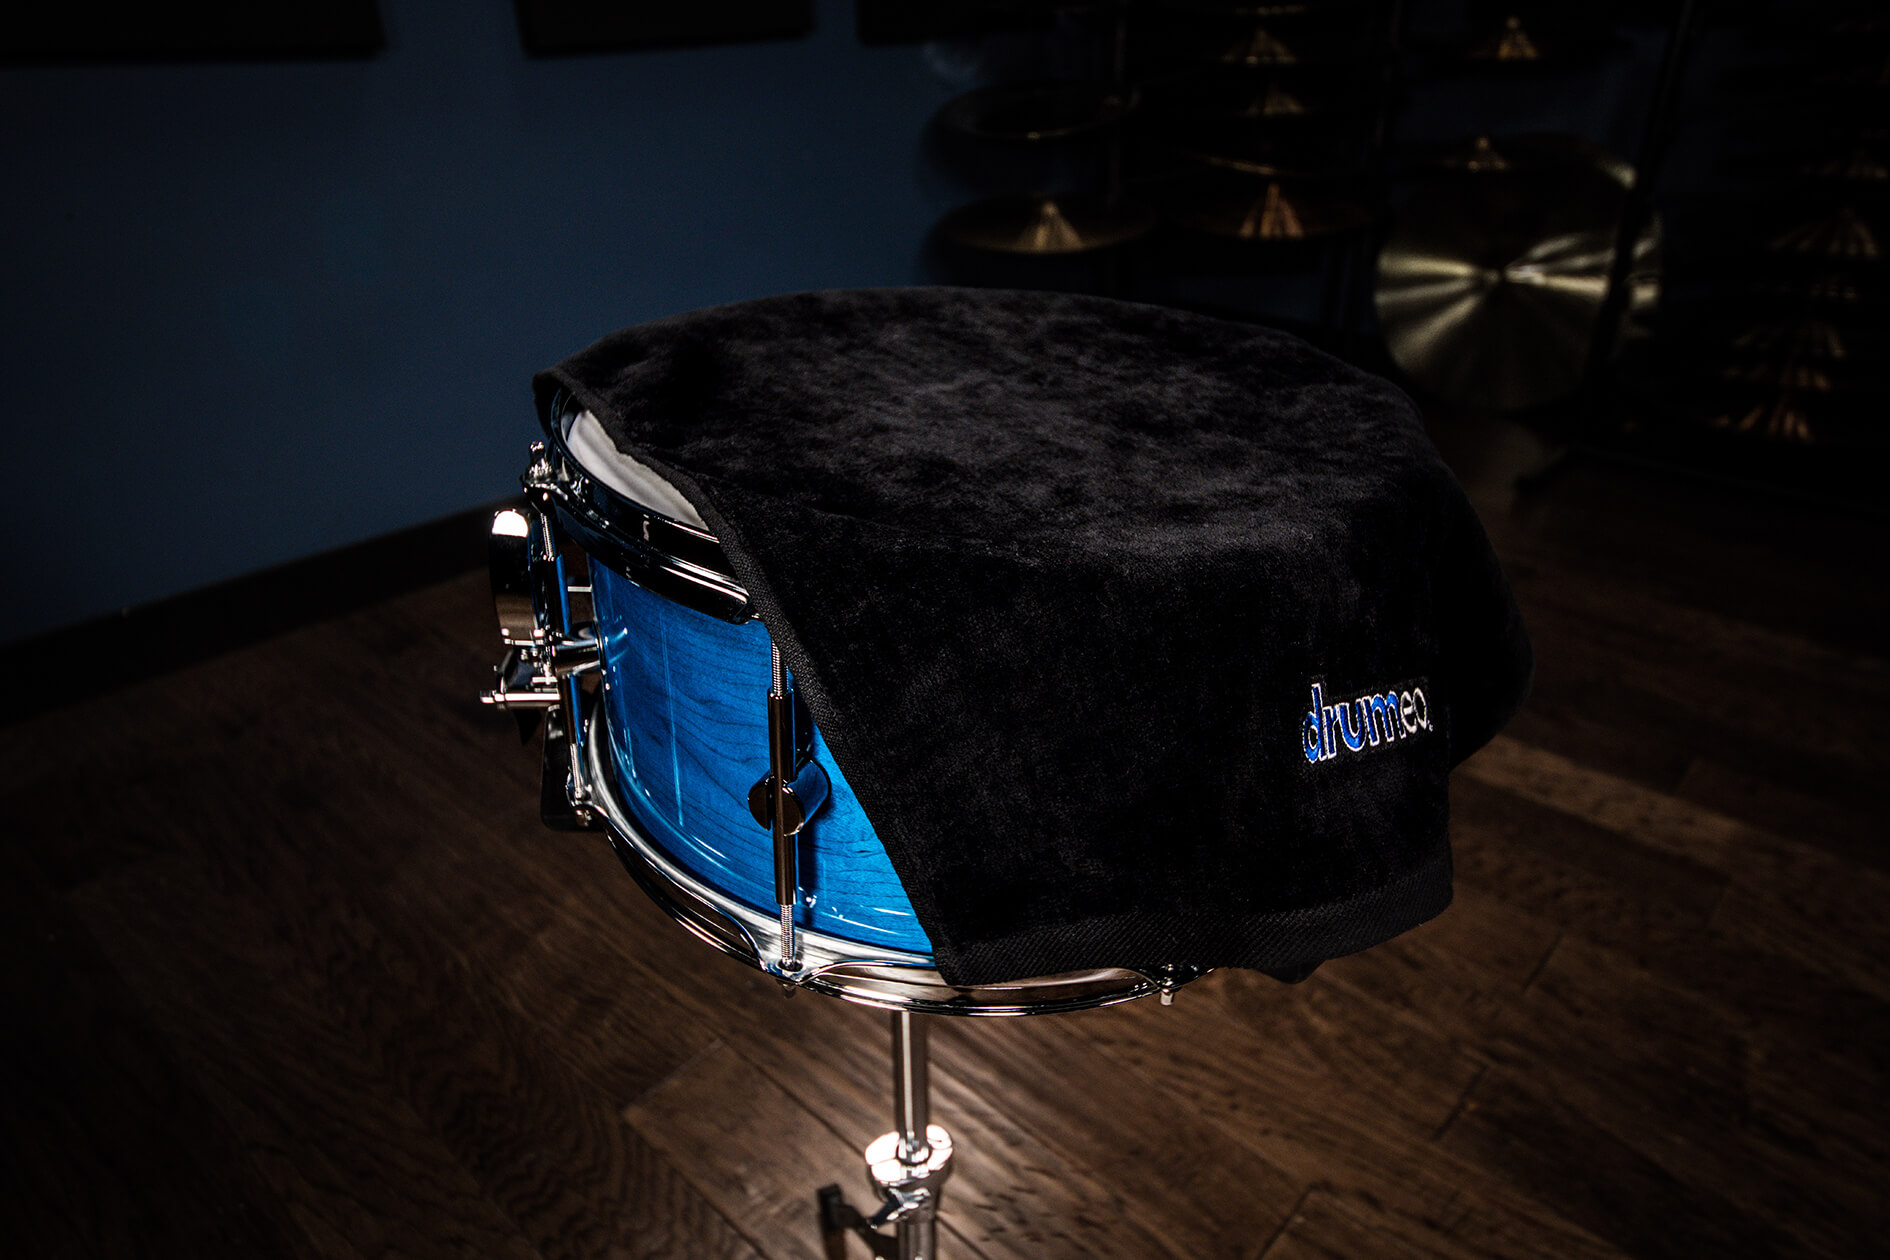 On the low end of the budget spectrum is the simple expedient of throwing some fairly heavy-weight towels or blankets over your acoustic drum kit.